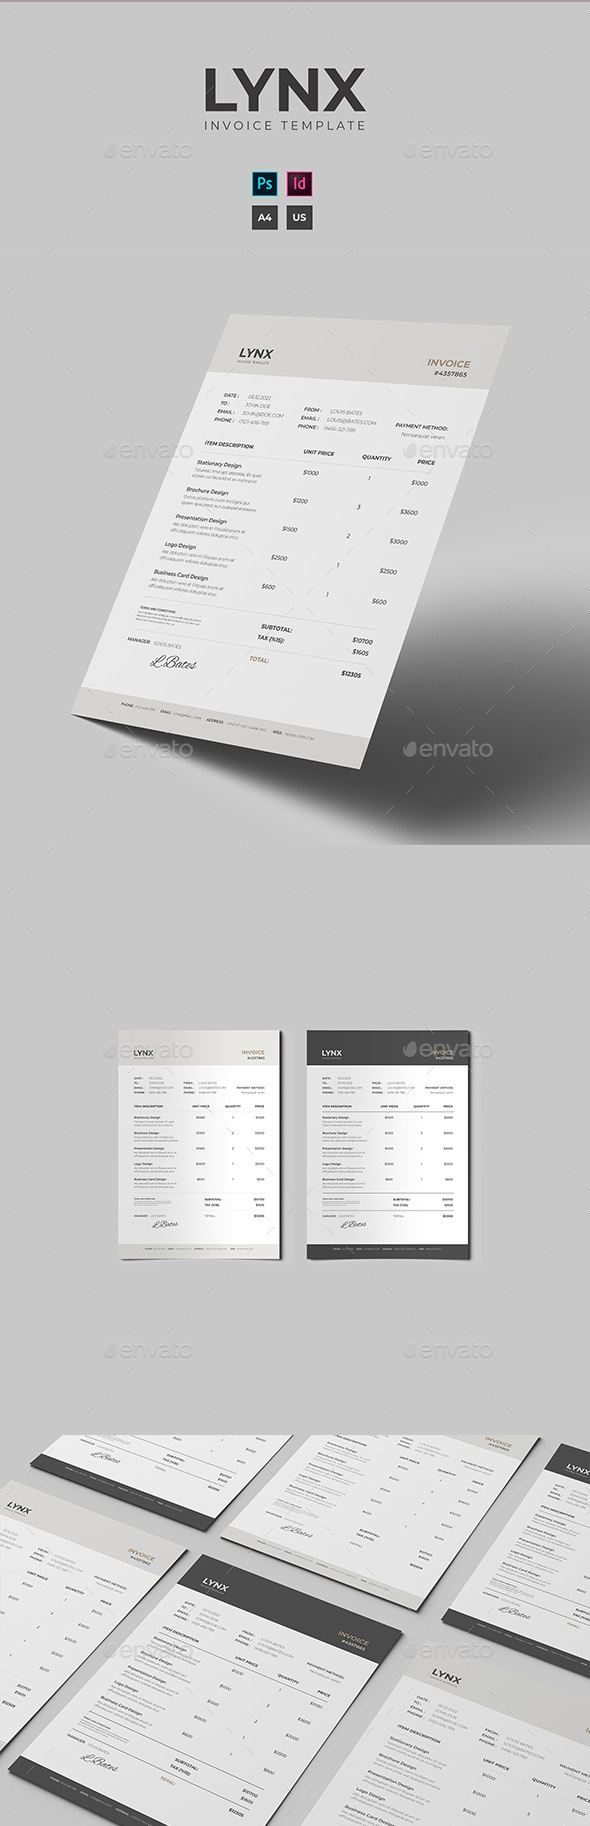 Lynx Invoice Template - Proposals & Invoices Stationery